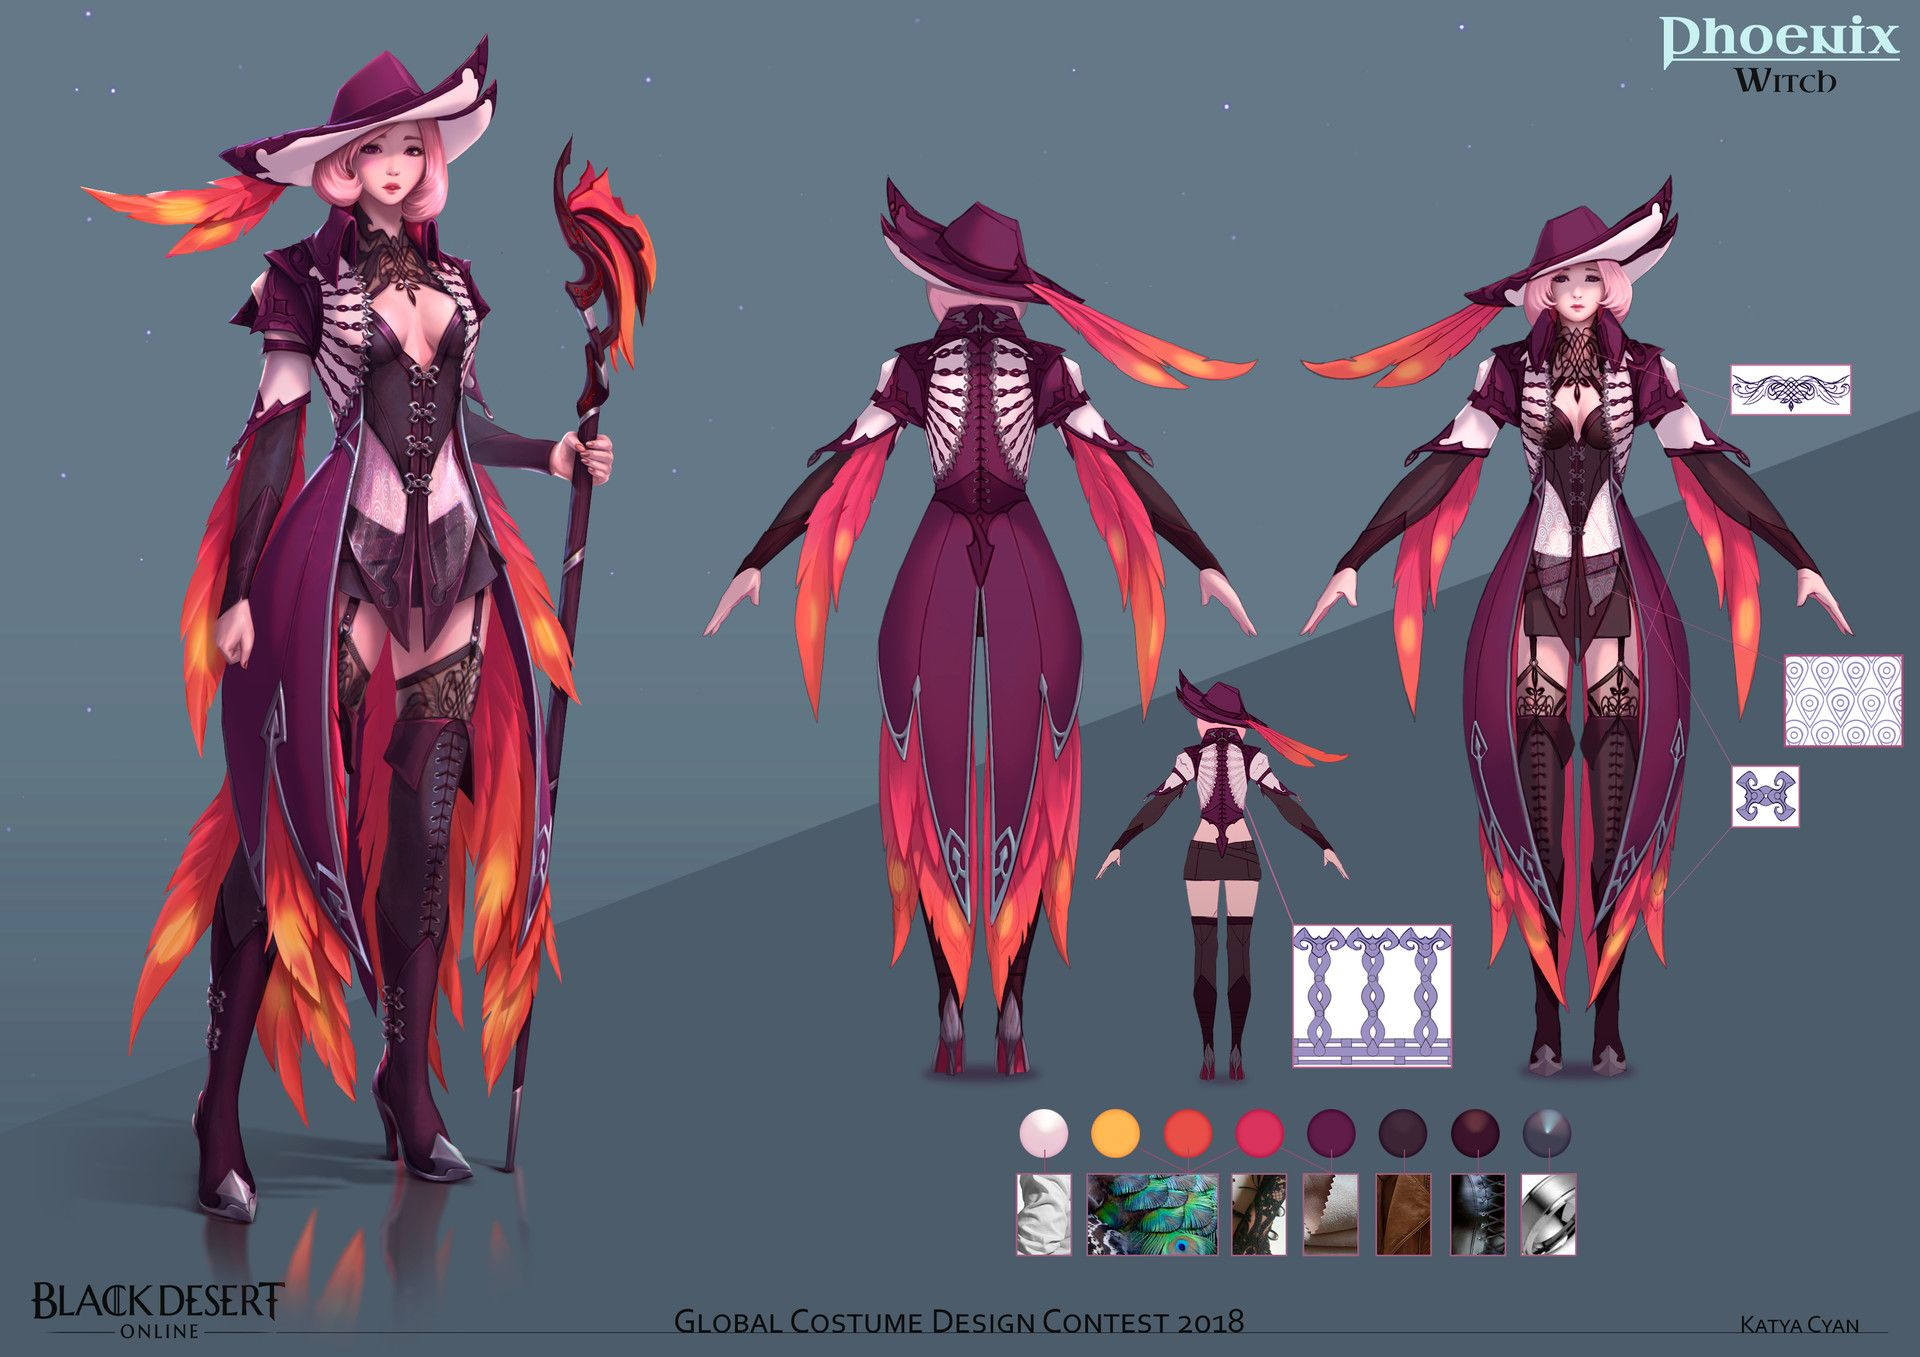 Phoenix Witch By Katya Cyan Imaginary Characters Artwork Of Heroes Villains And Champions Witch Costume Design Villain Costumes